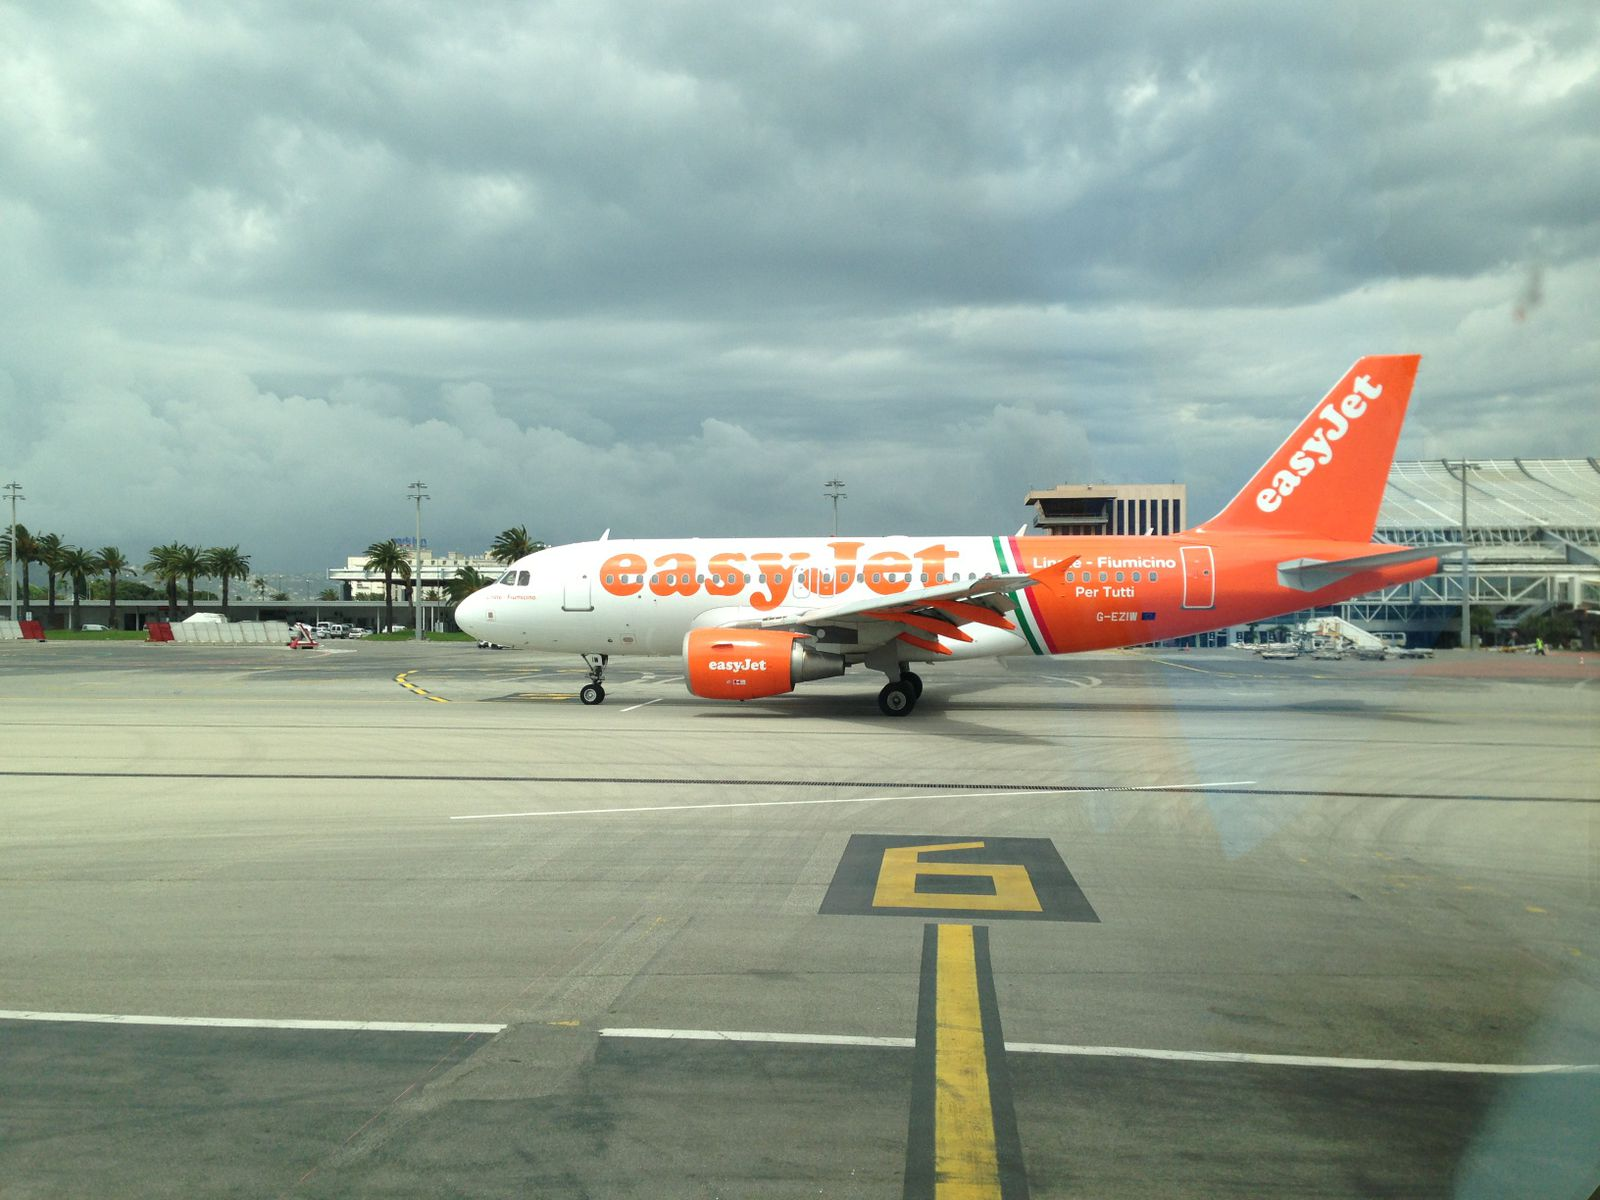 Special paint on a Easyjet A319